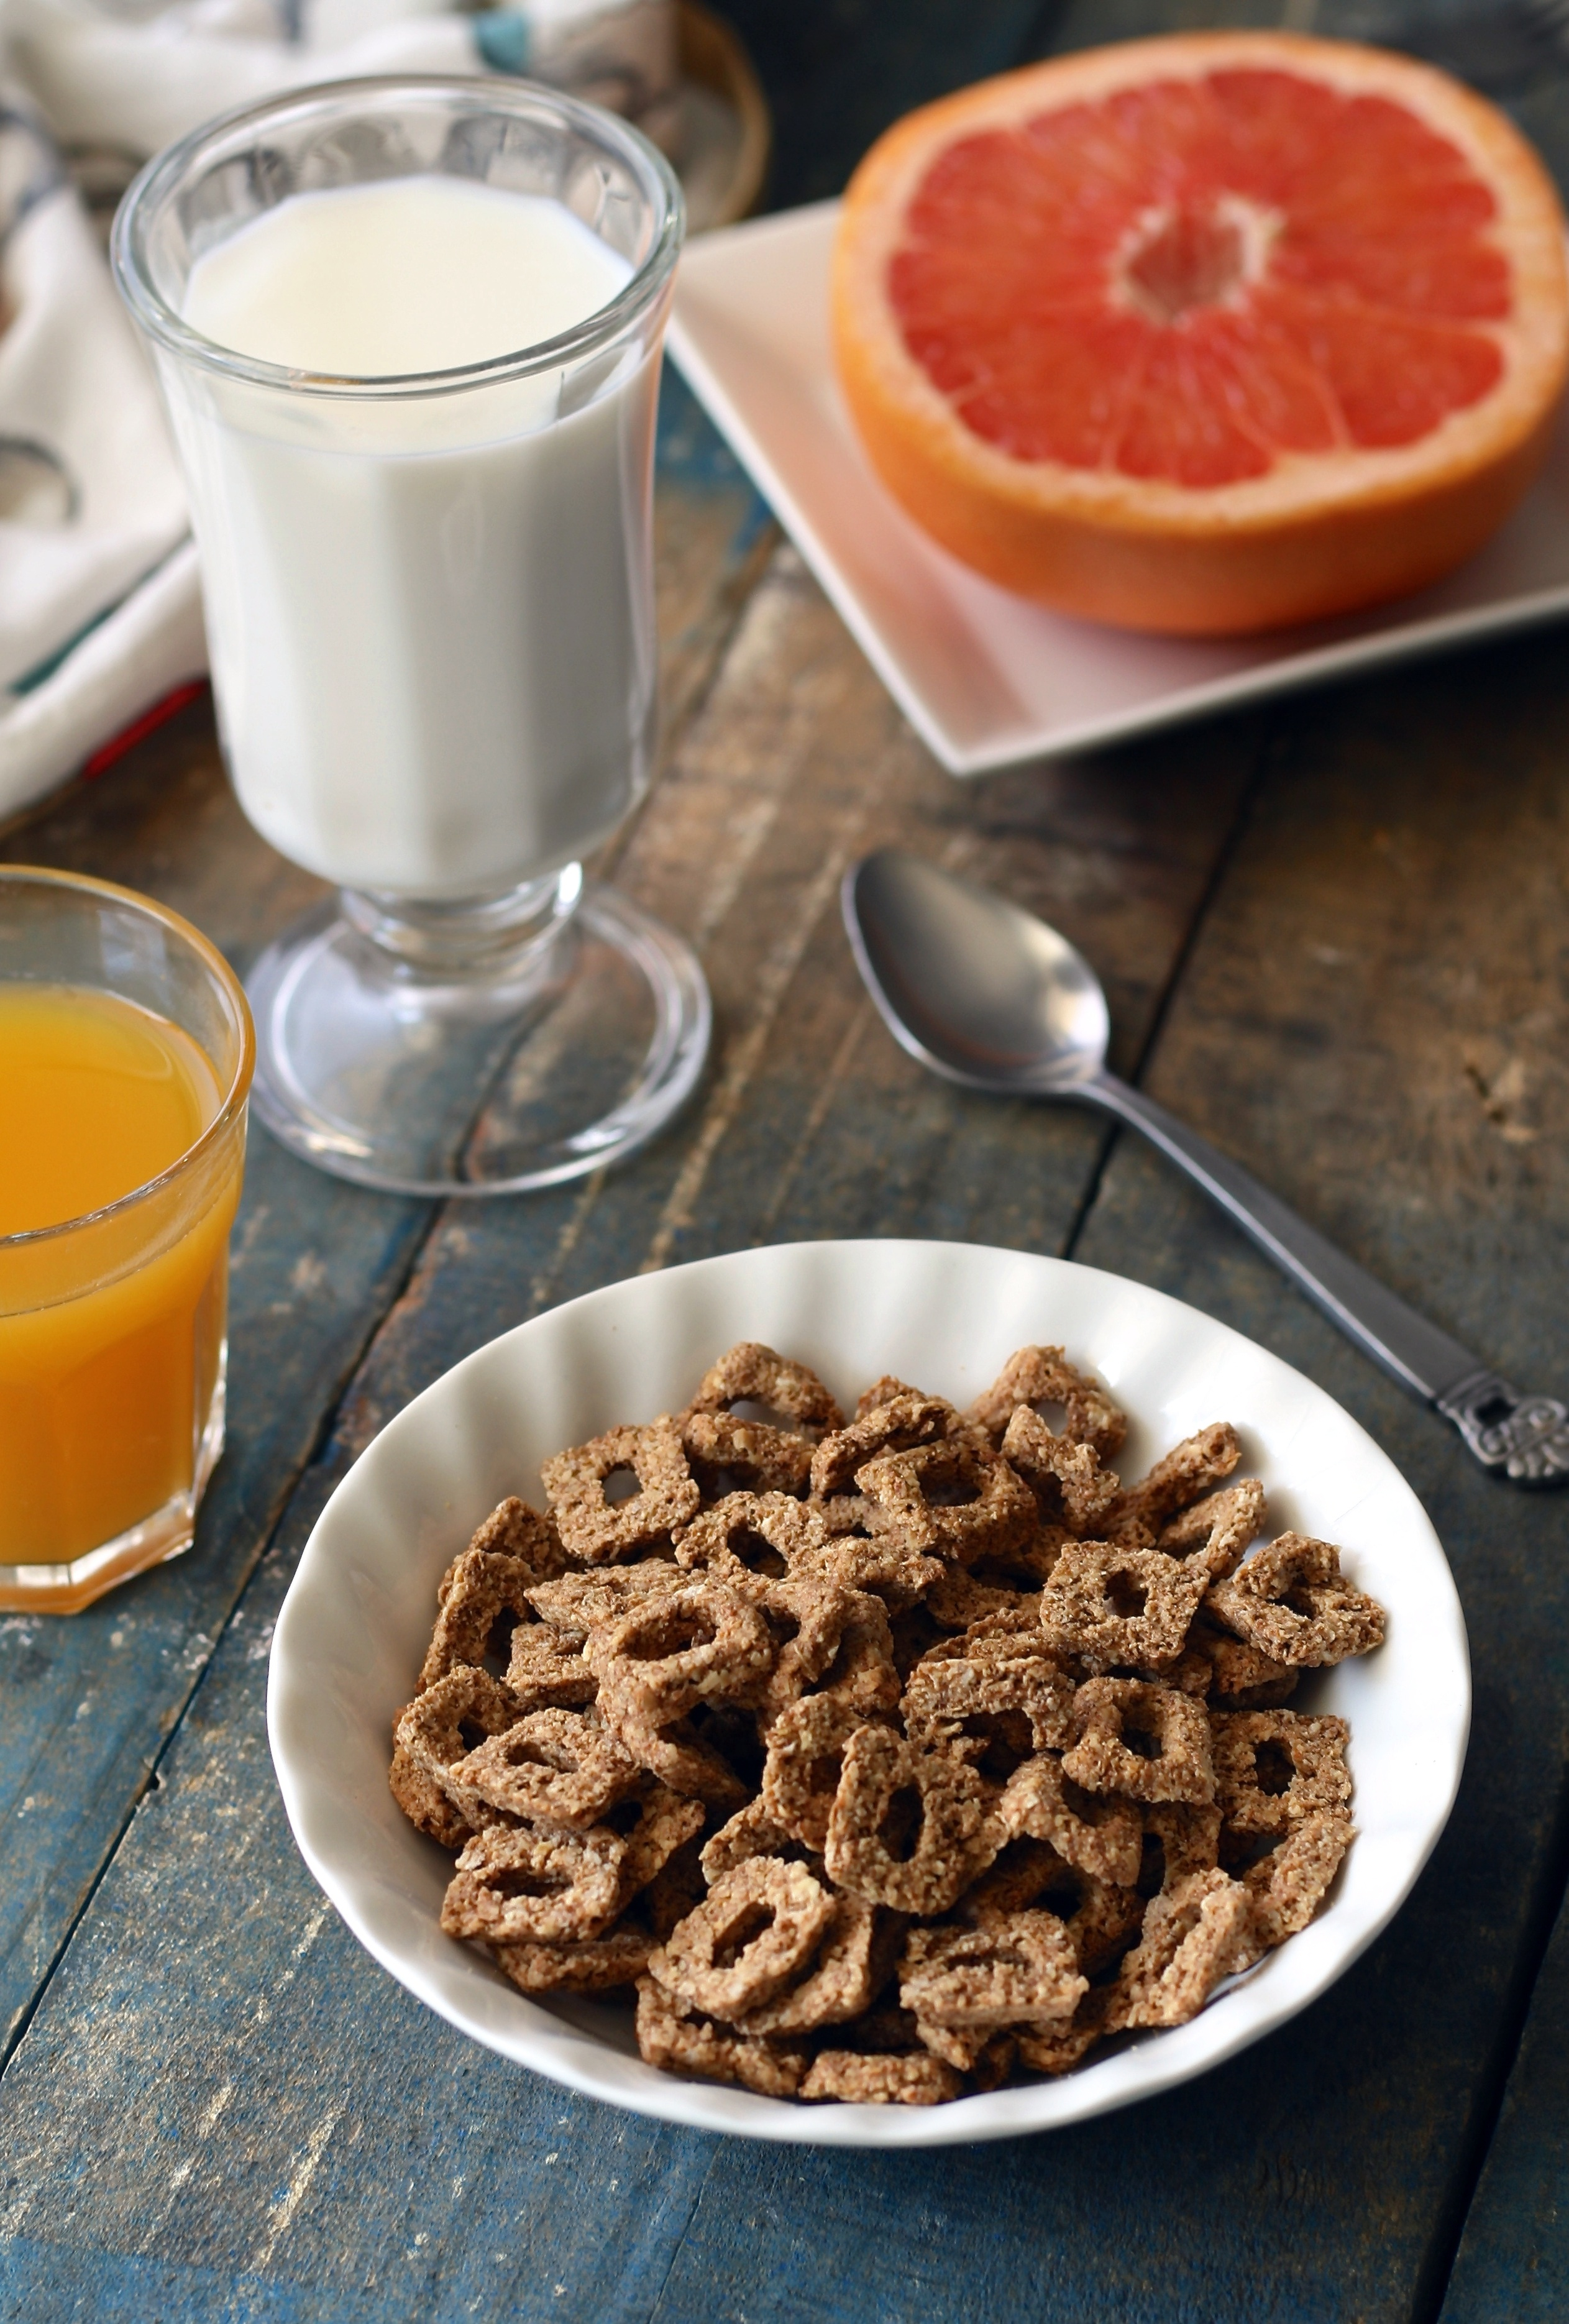 Wallpaper Iphone X Commercial Free Stock Photo Of Bowl Breakfast Cereal